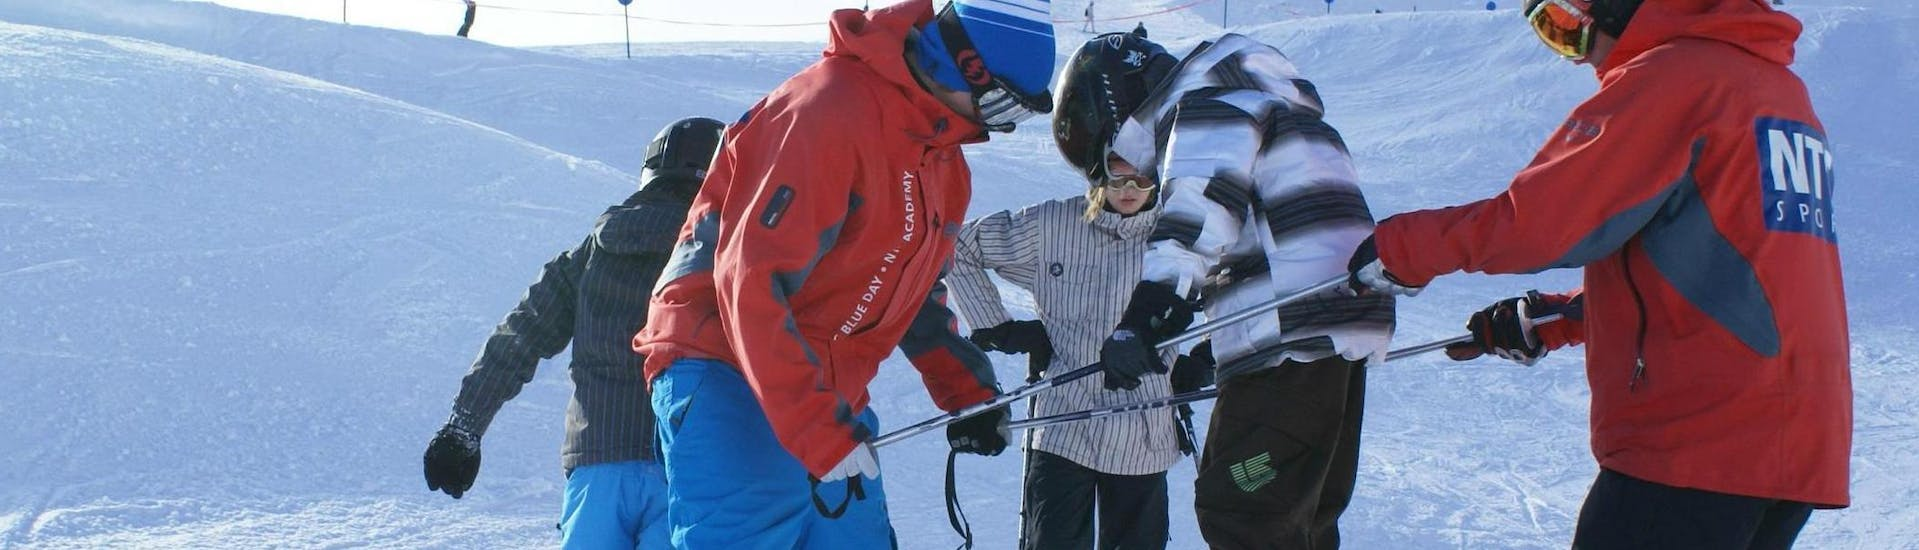 """A child learns in the Kids Ski Lessons """"NTC Freestyle Camp"""" (9-16 years) the basics of freestyle skiing from two instructors from NTC Skischule Oberstdorf."""